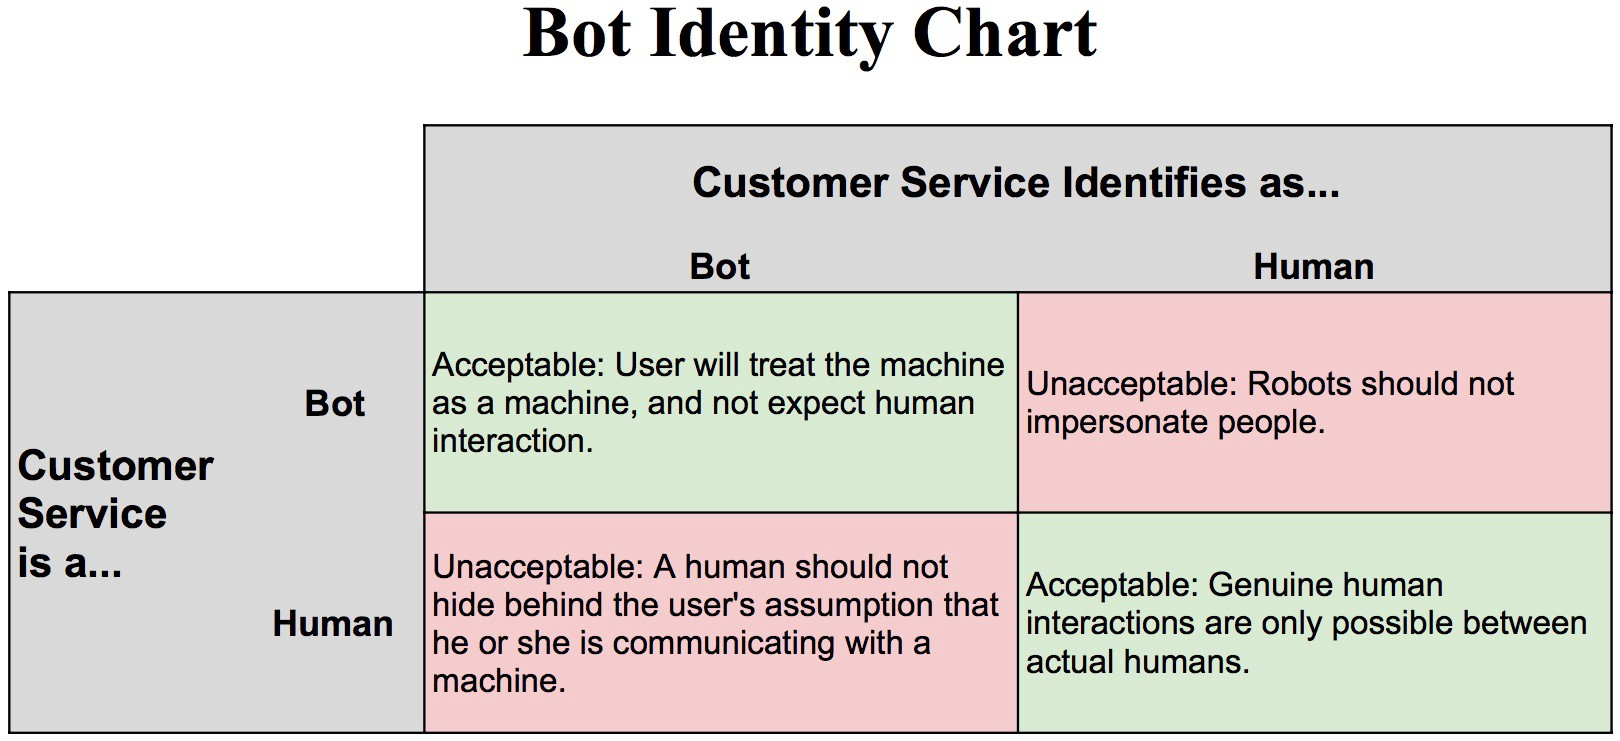 Is it OK for a Chatbot to Impersonate a Human? - Chatbots